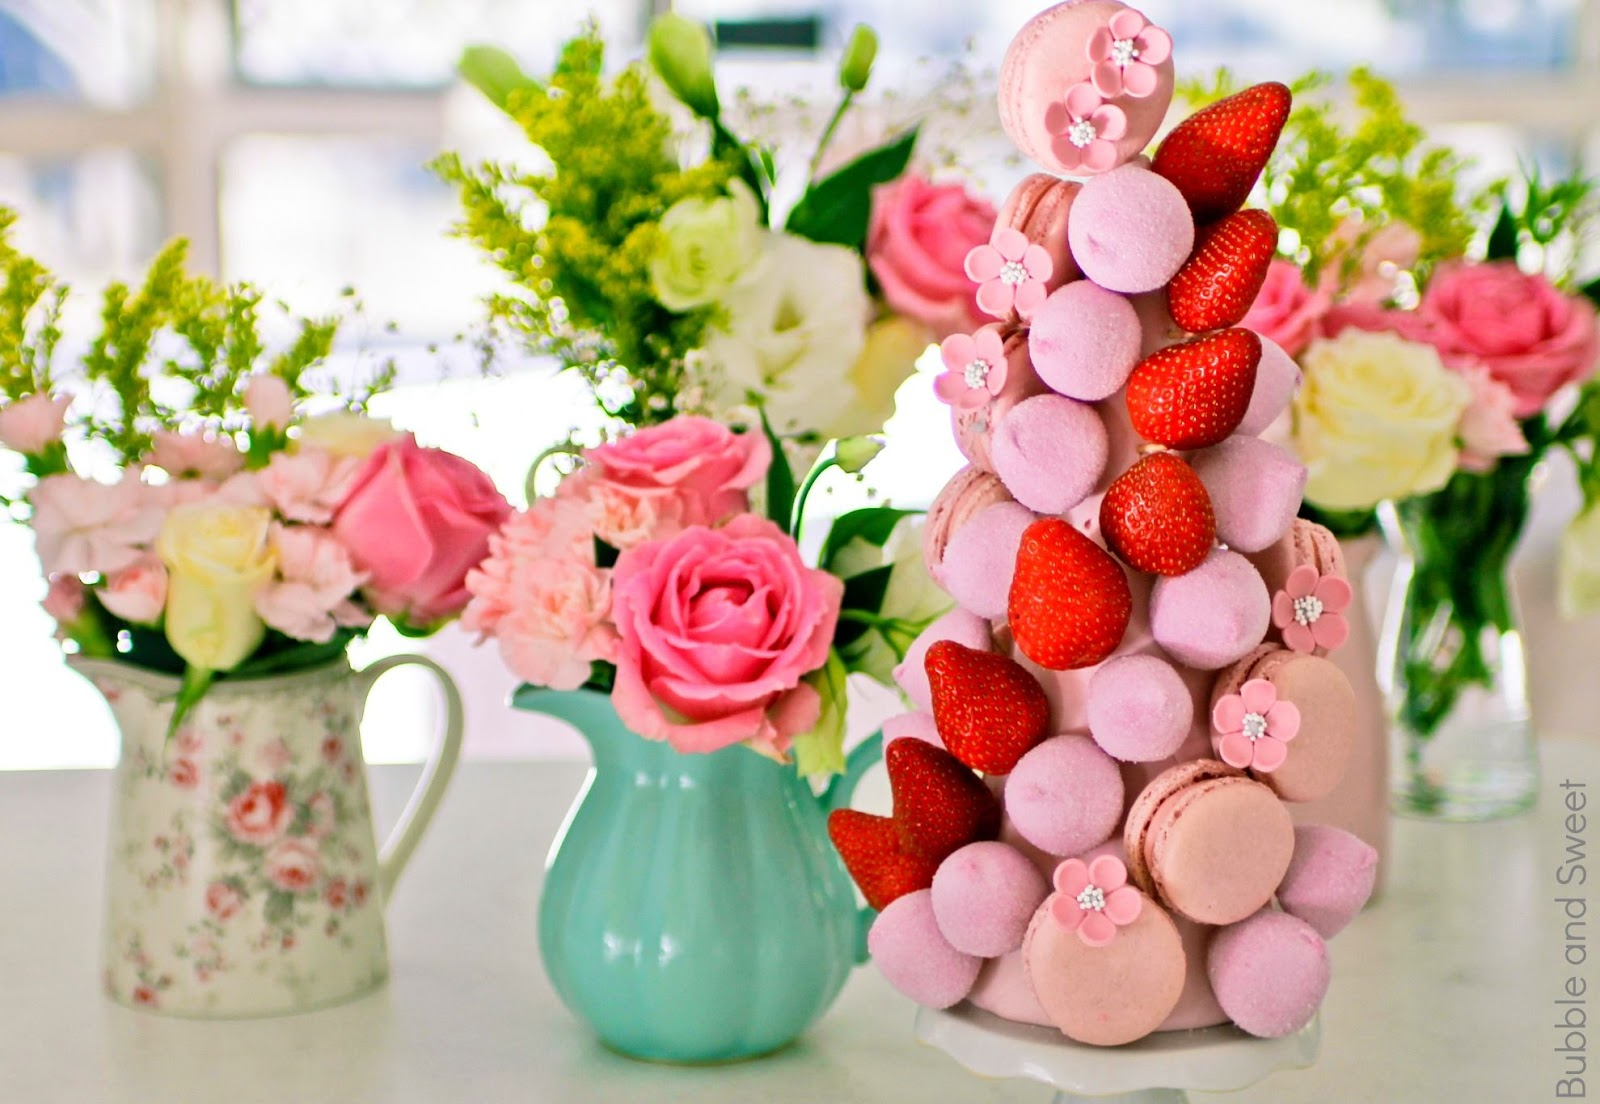 Bubble and sweet how to make a macaron marshmallow and strawberry how to make a macaron marshmallow and strawberry tower mightylinksfo